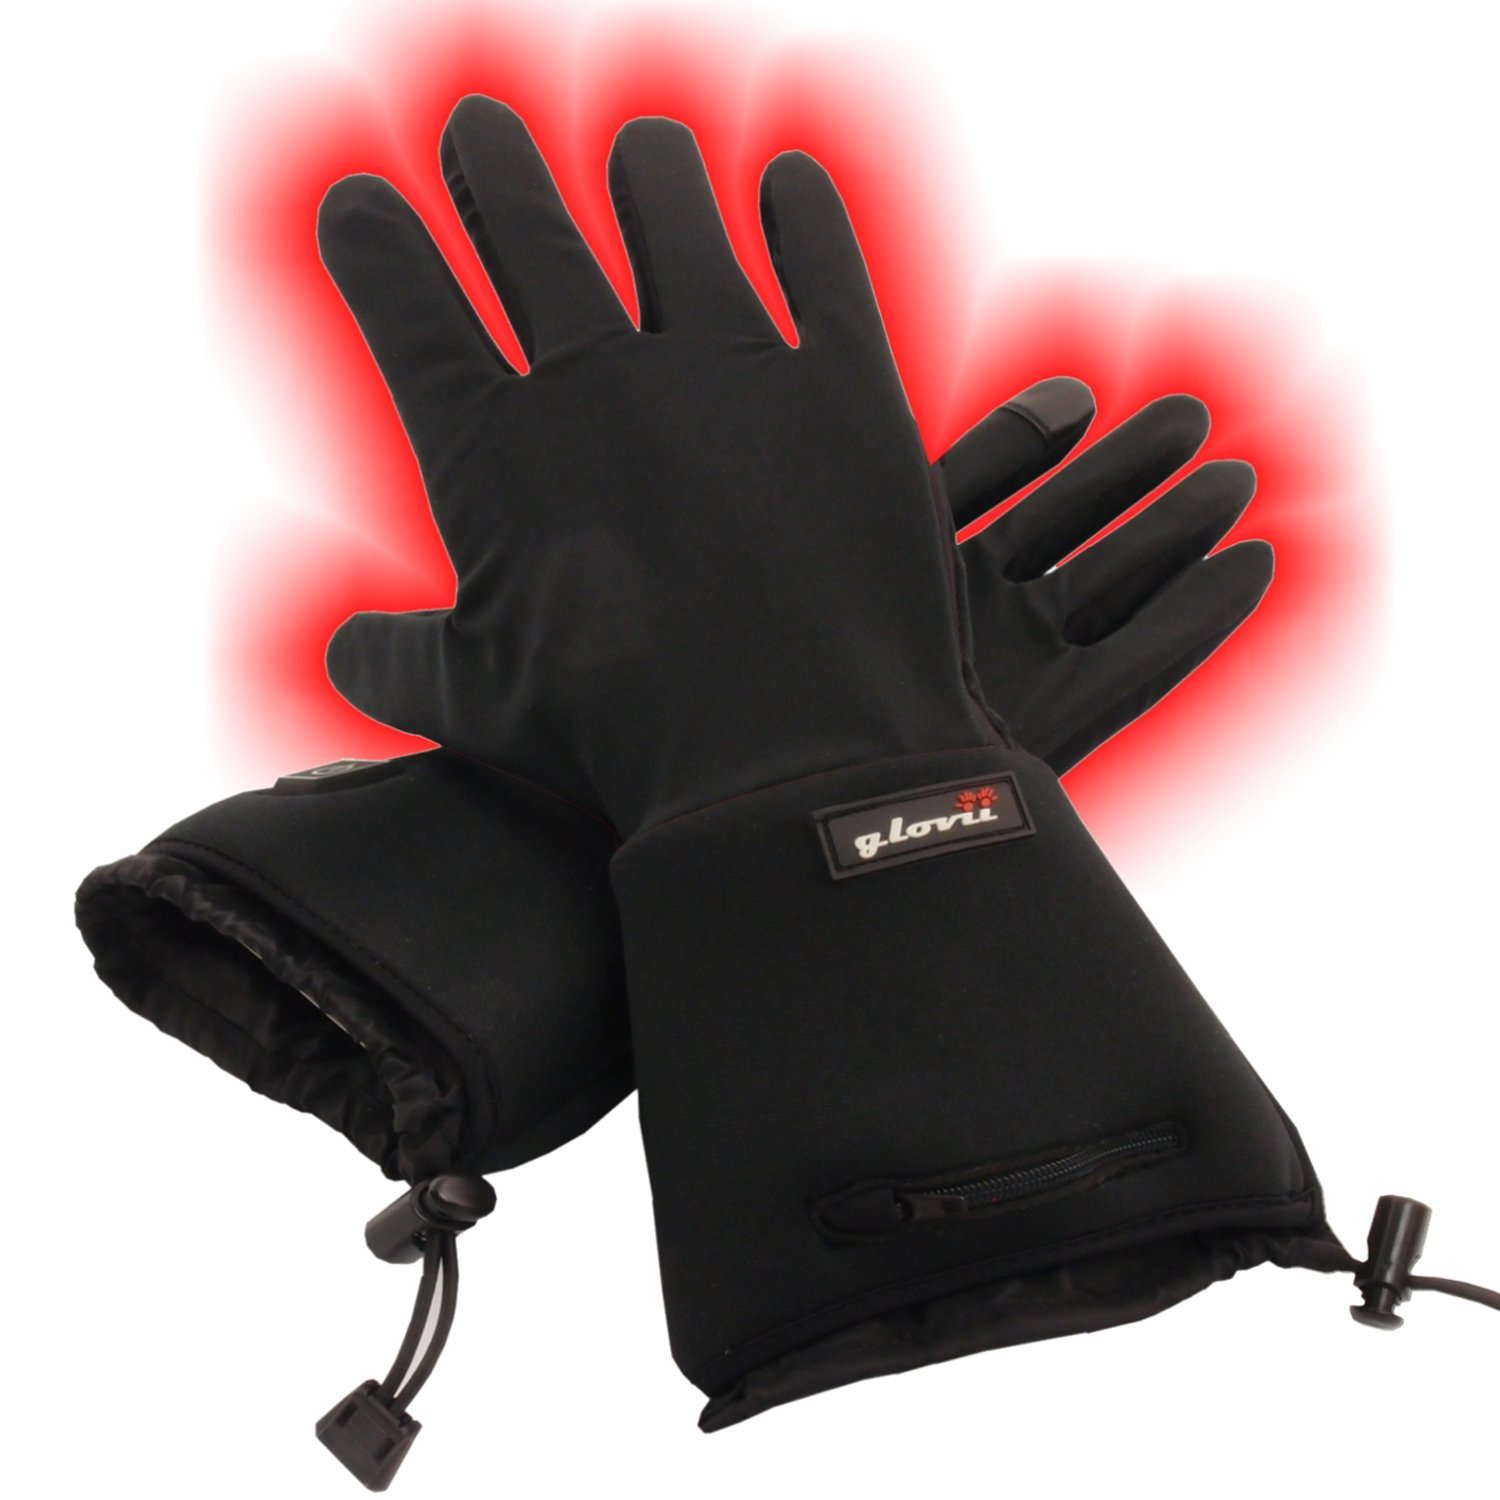 Battery Heated Universal Touchscreen Glove Liners, up to 6 hours of warmth at one recharge - improved 2014 model with free battery extention cable and free storage case - Glovii by Glovii (Image #8)